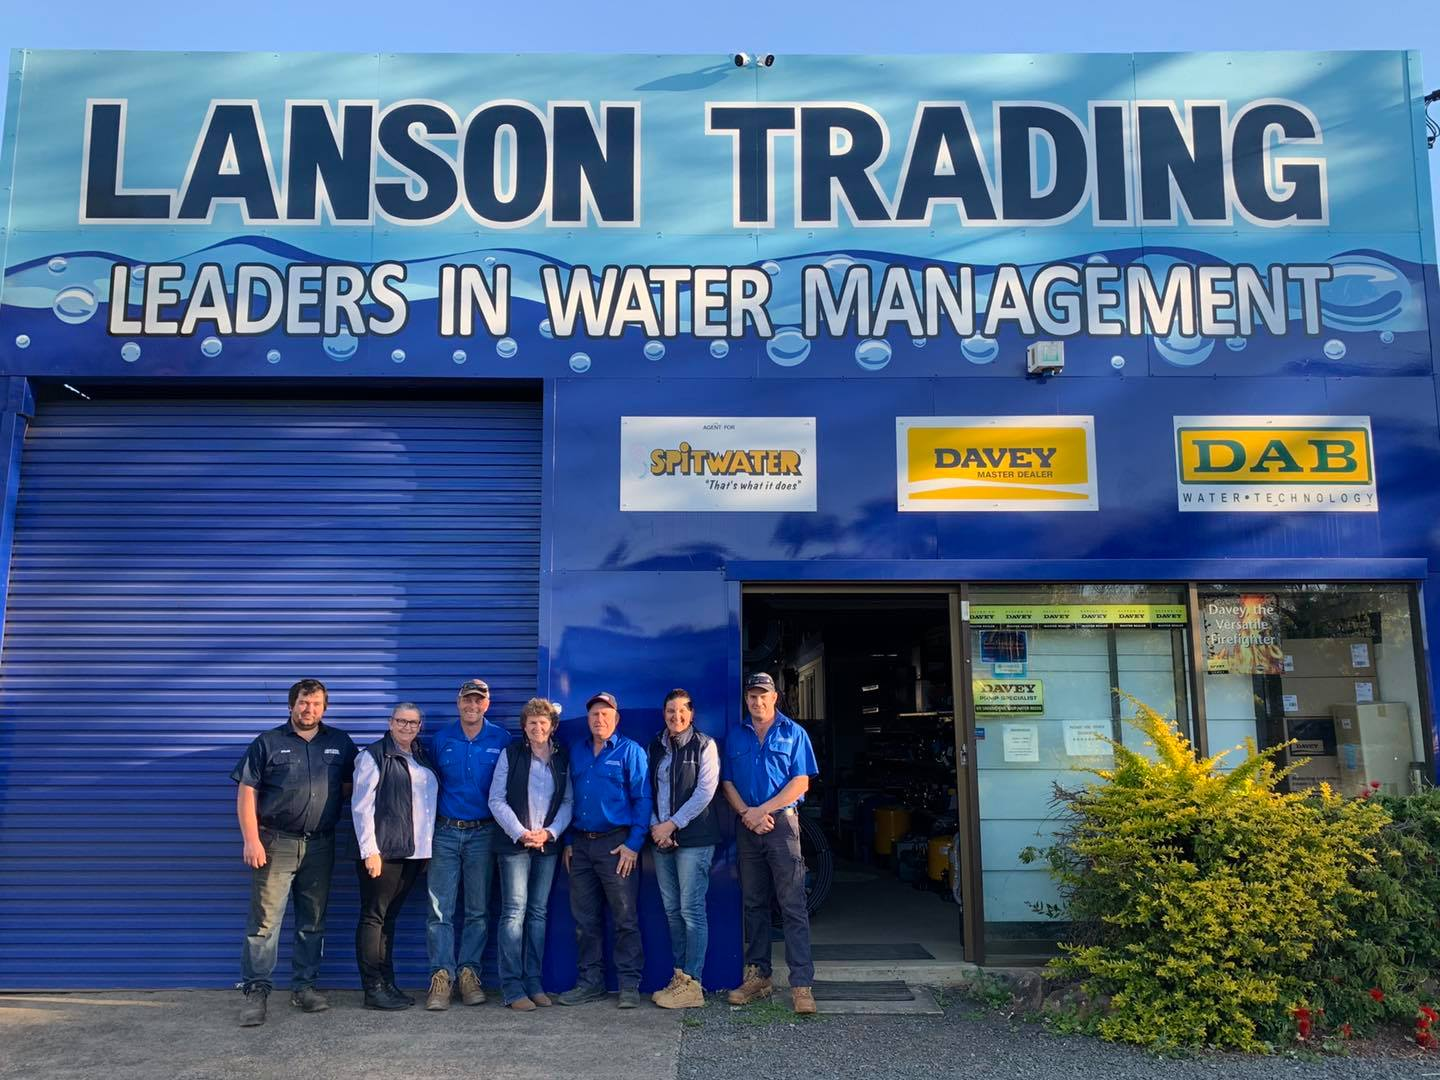 Lanson trading staff standing outside shop front.